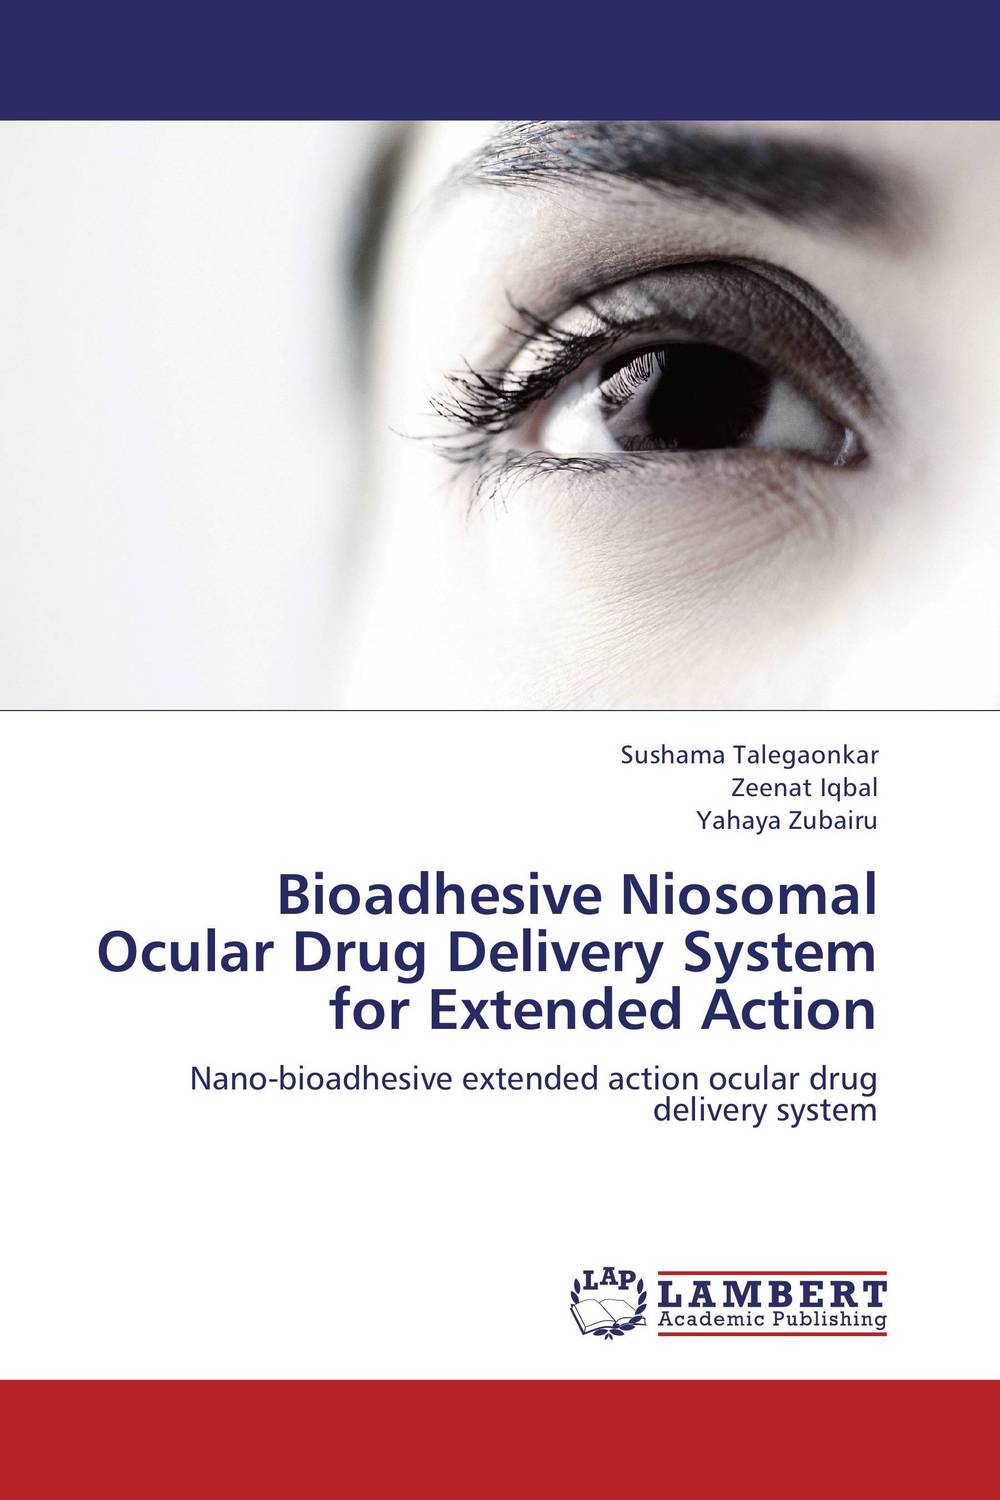 Bioadhesive Niosomal Ocular Drug Delivery System for Extended Action kamal singh rathore shreya patel and naisarg pujara nanoparticulate drug delivery system